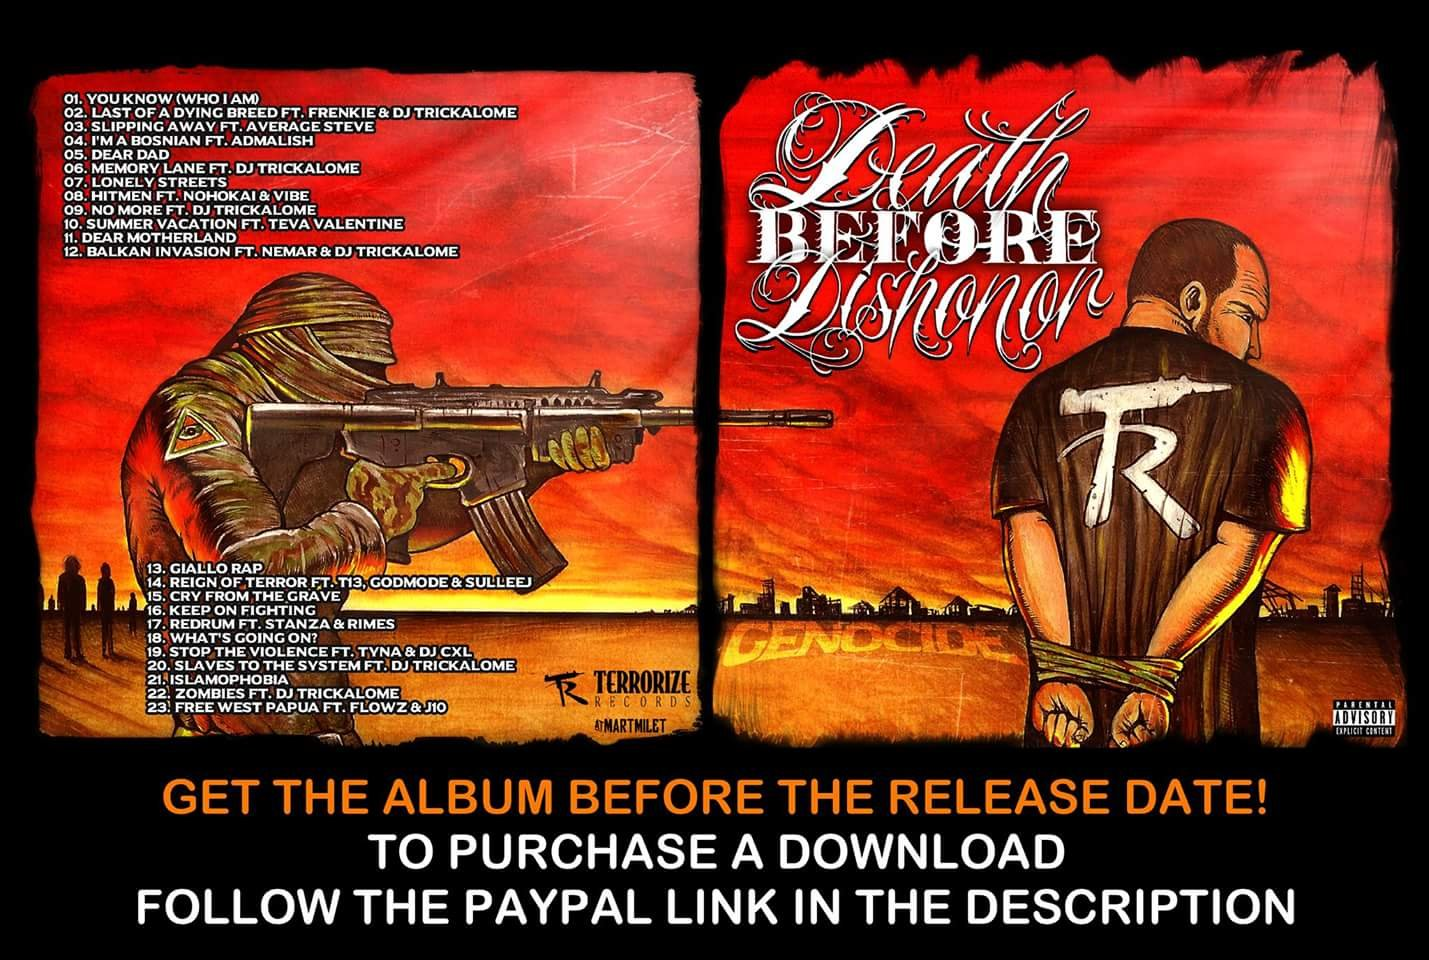 death before dishonor mp3 download